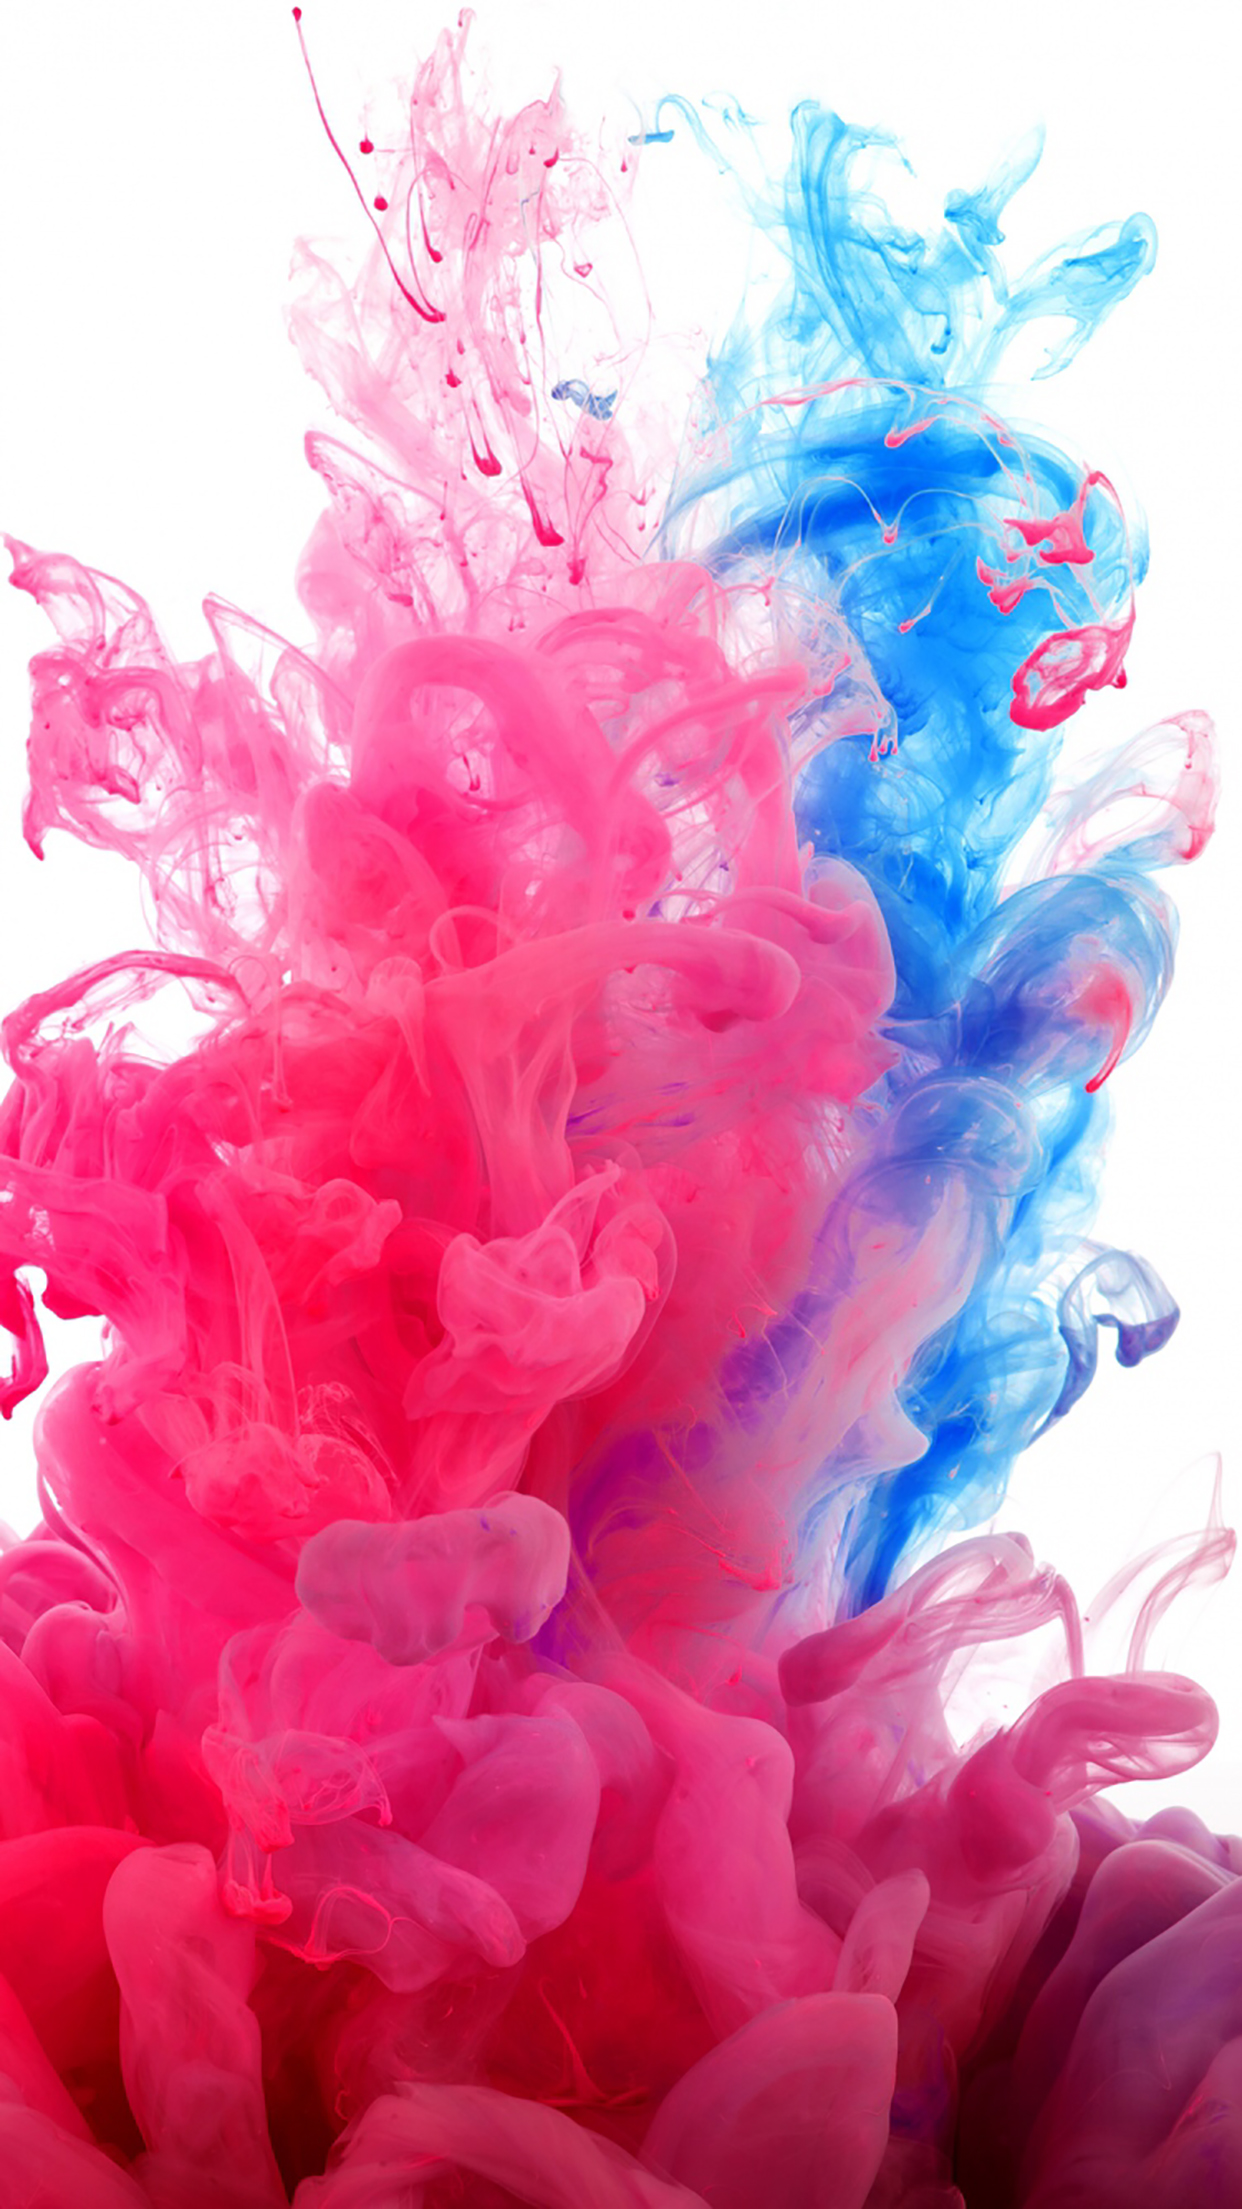 Ink Pink And Blue 3Wallpapers iPhone Parallax Ink : Pink And Blue